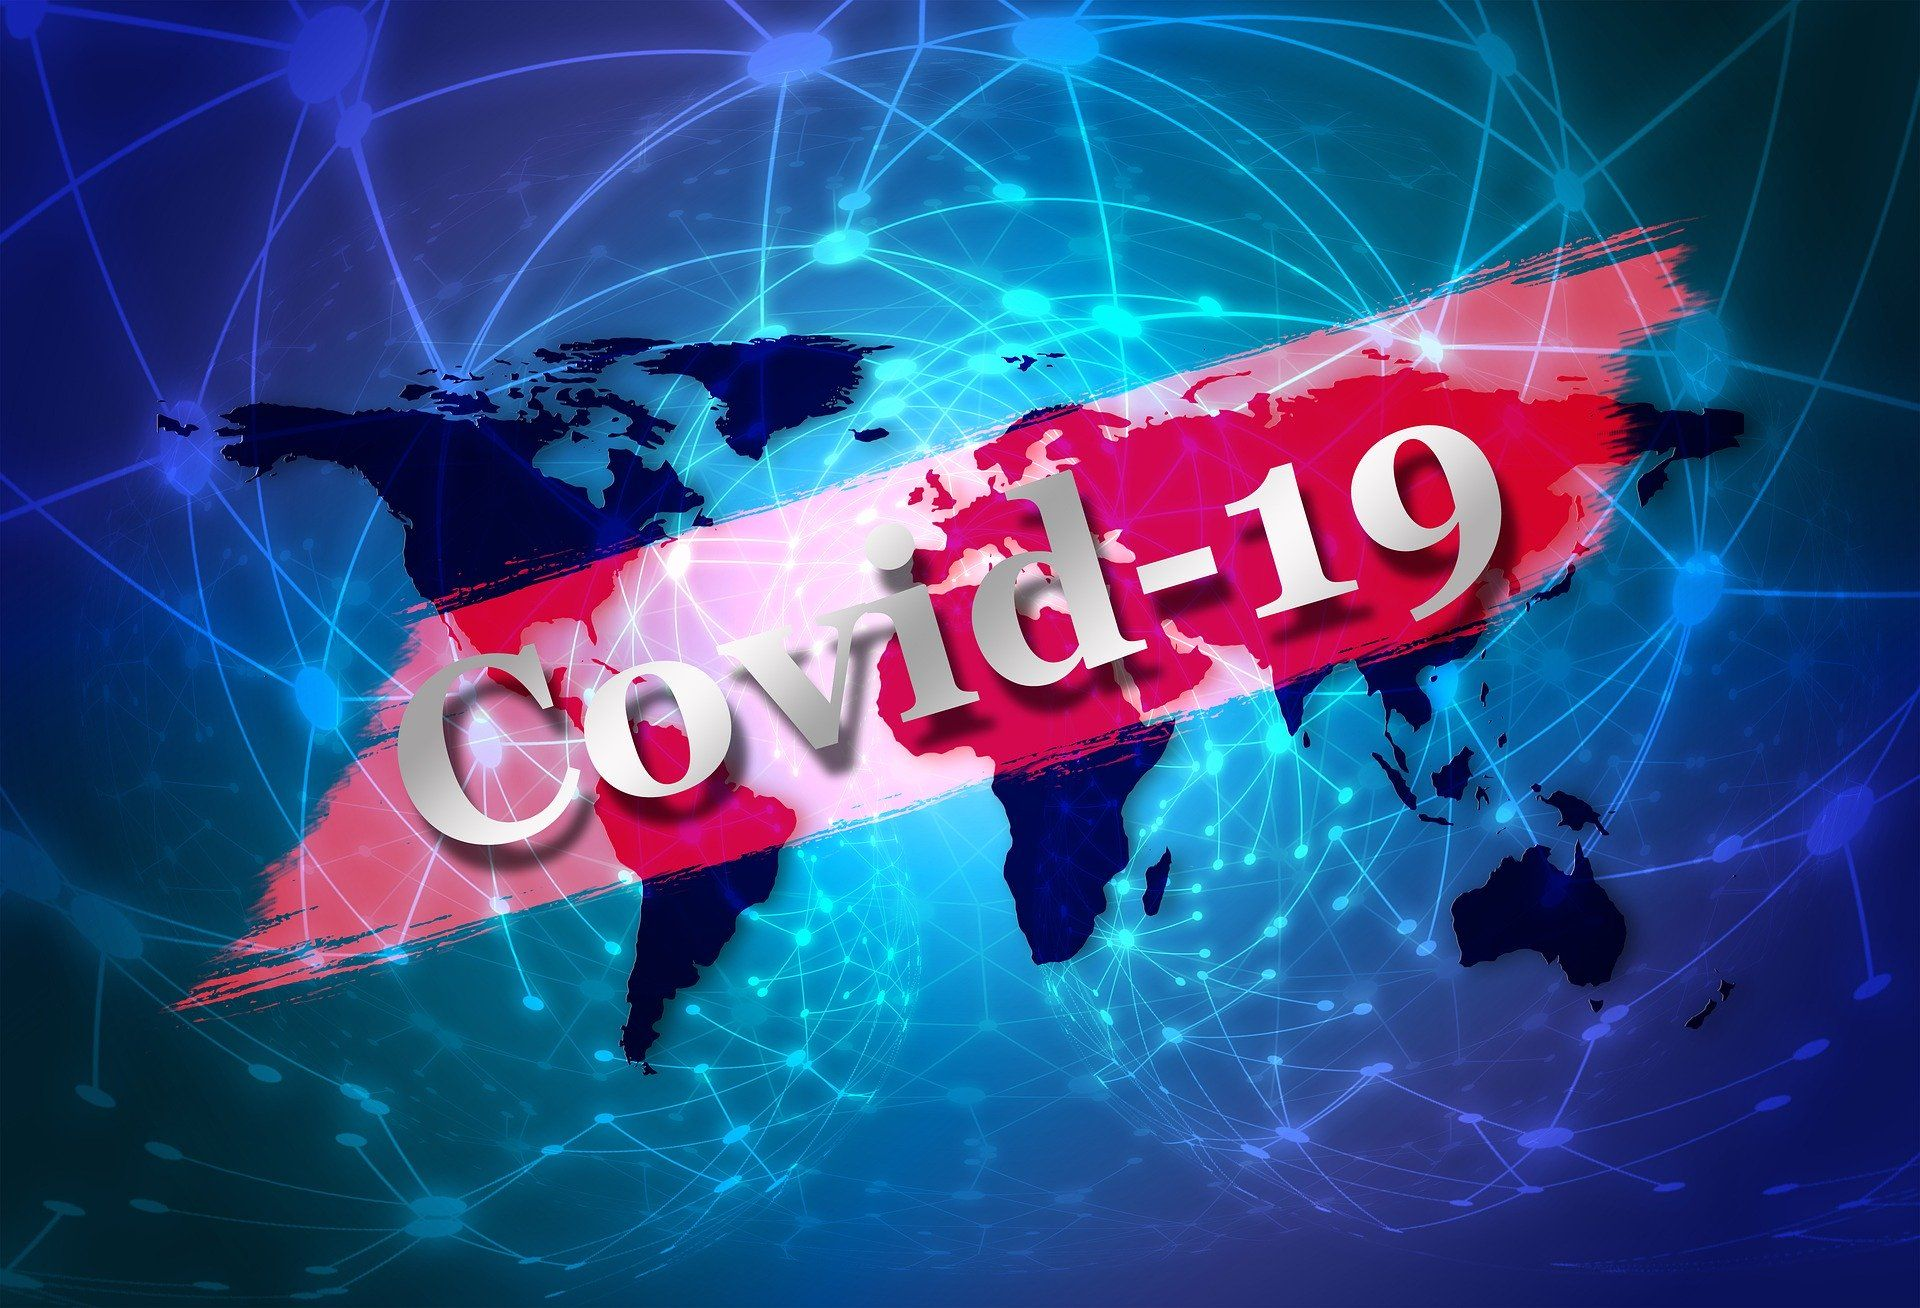 The organizing committee of the 14th International Conference of the ISSRL agrees to postpone its celebration due to the coronavirus